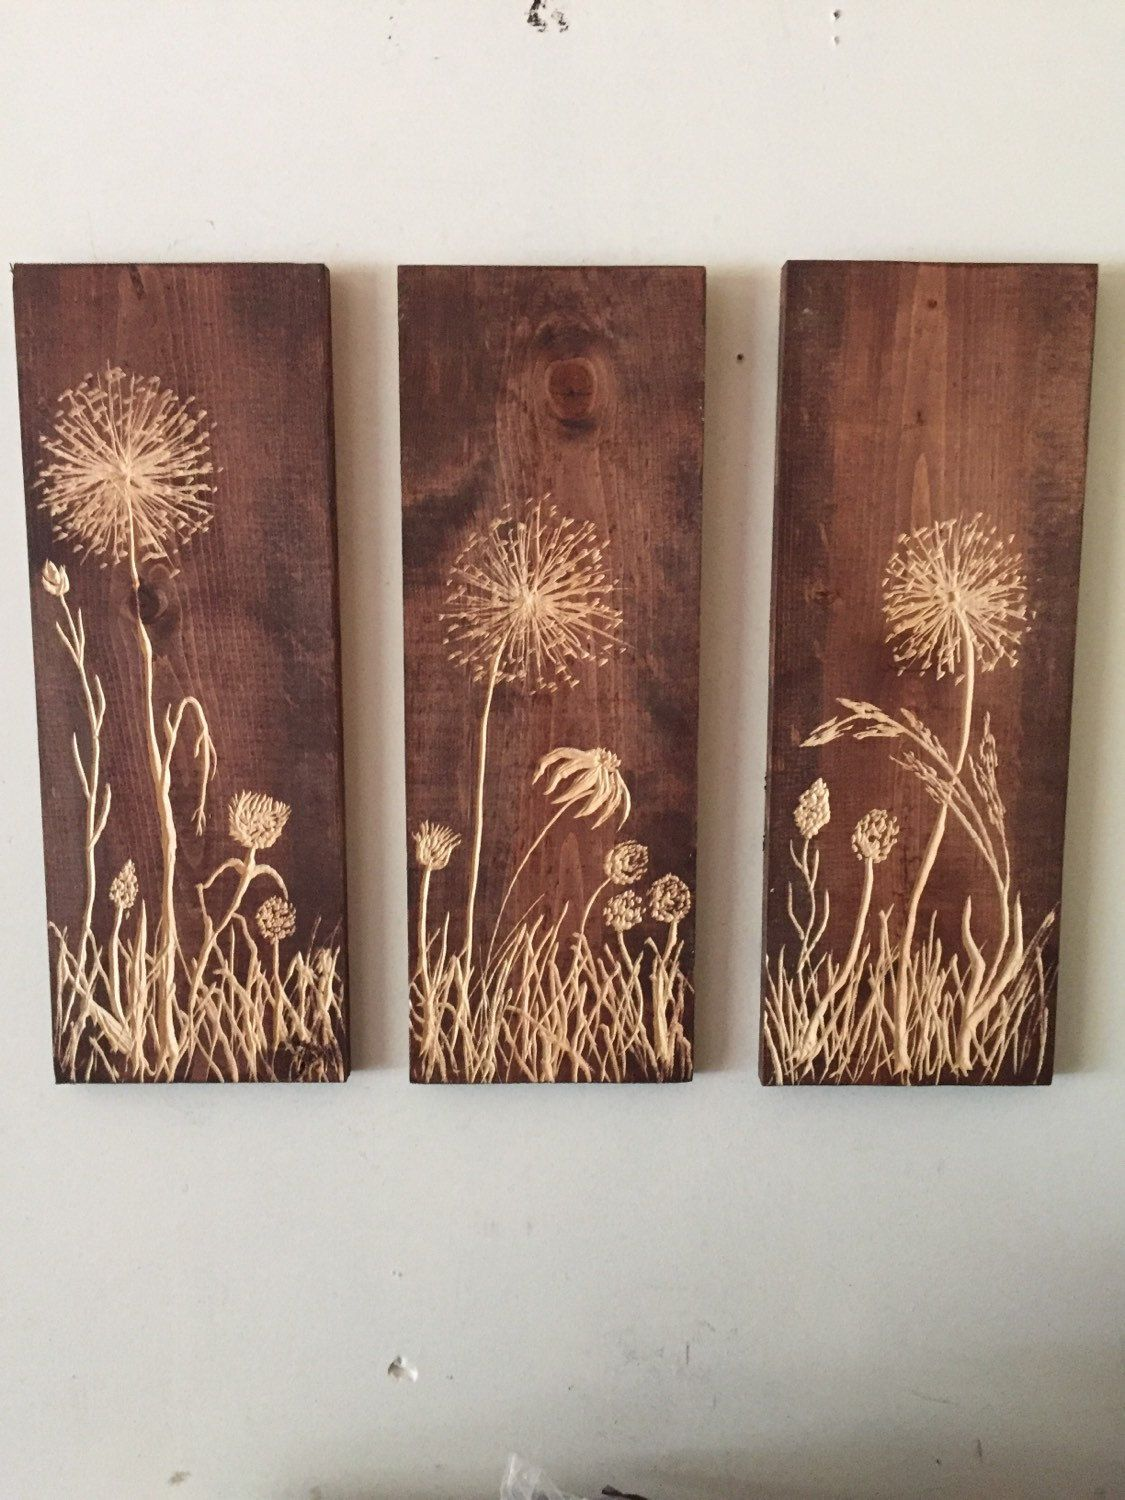 Jdecreations new home pinterest carved wood wood wall art and